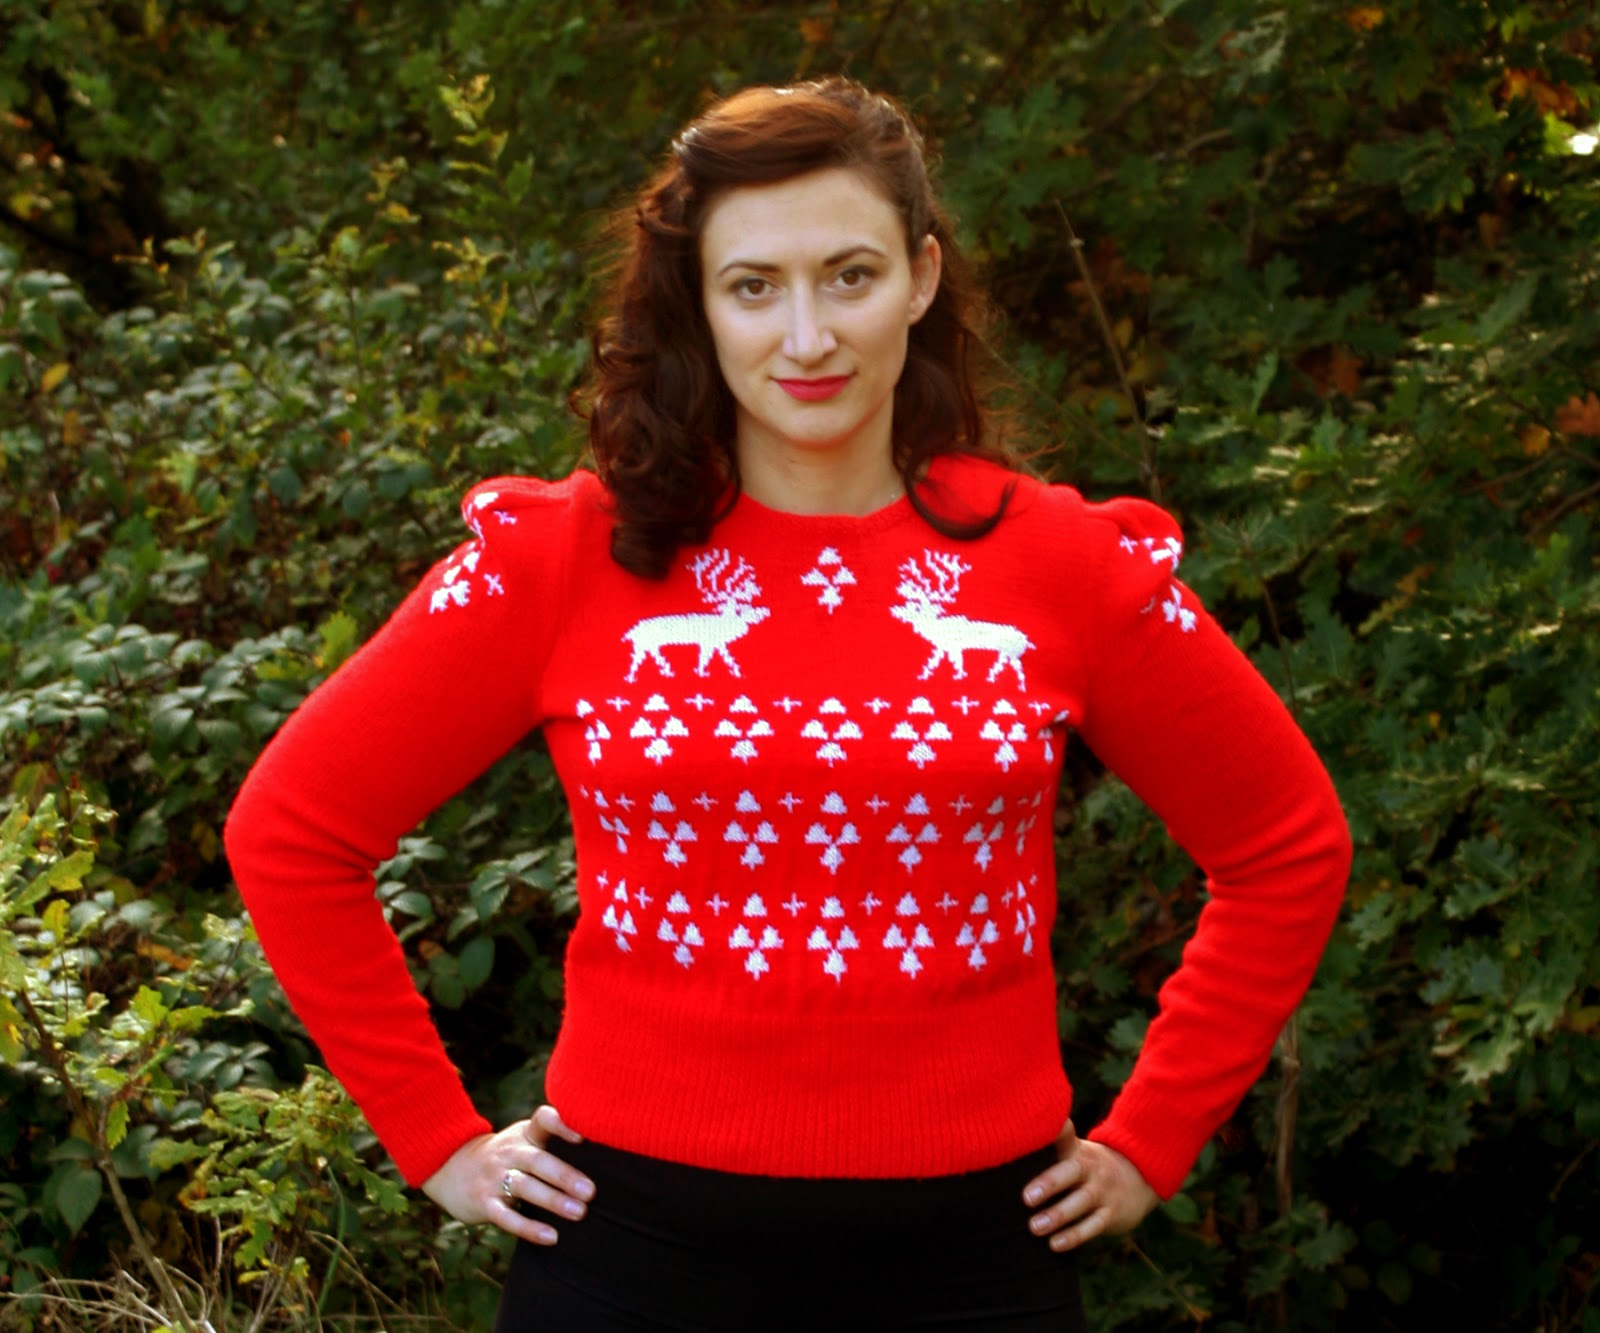 The butterfly balcony knit it the perfect christmas jumper the perfect christmas jumper knitting pattern susan crawford bankloansurffo Image collections